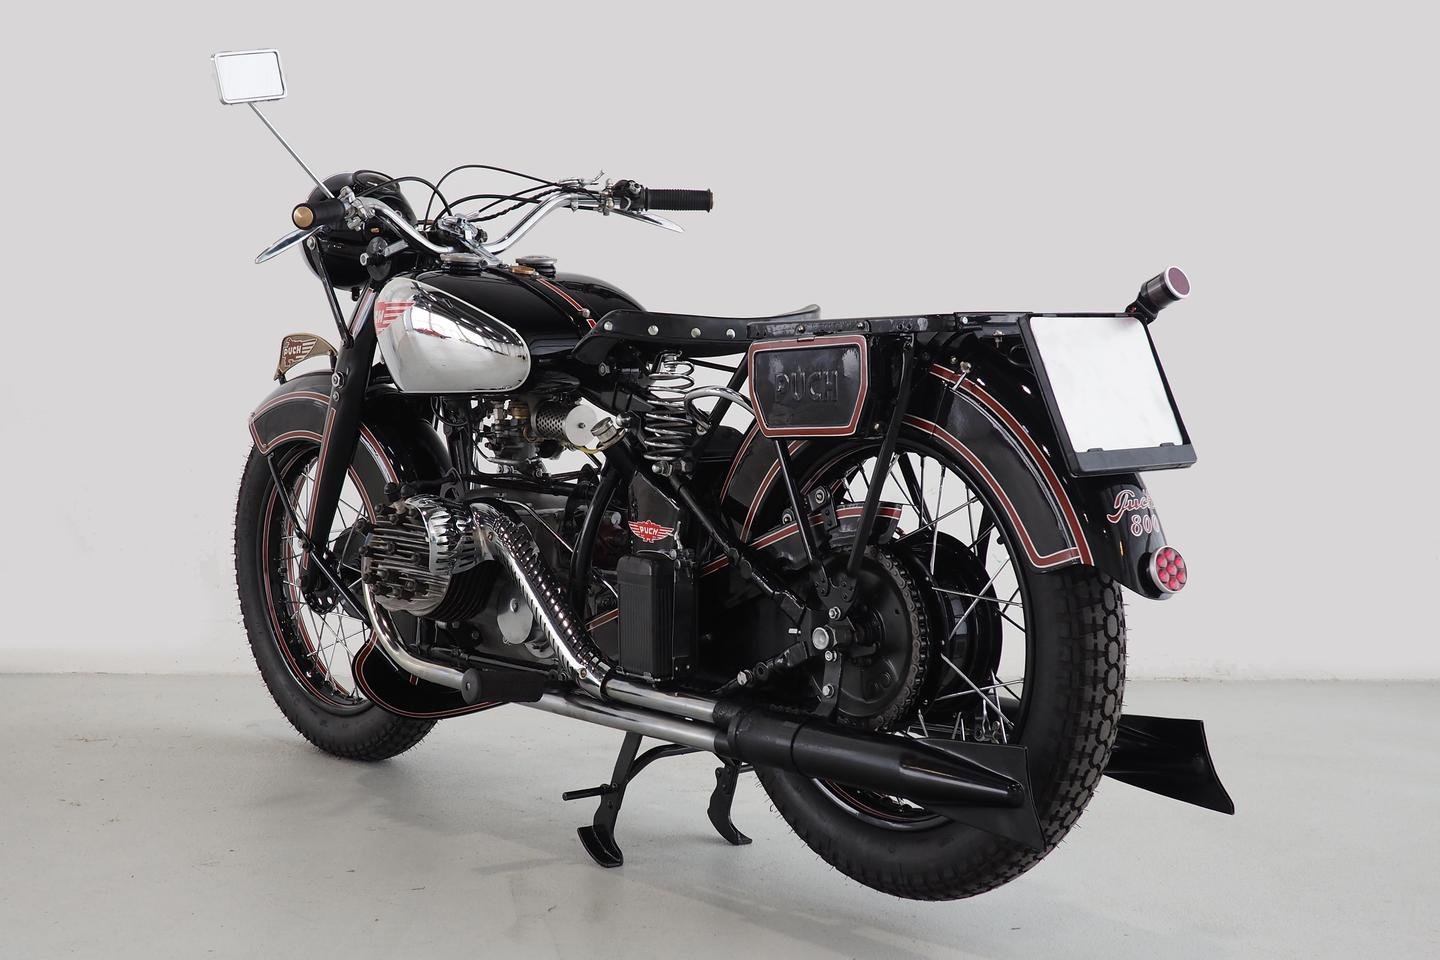 1937 Puch 800 | Dorotheum Auctions, Vienna | Sold 17 October, 2020 | EUR 103,500 (US$121,300) | Estimate: EUR 90,000 to EUR 120,000 (USD$110,000 to $140,000)